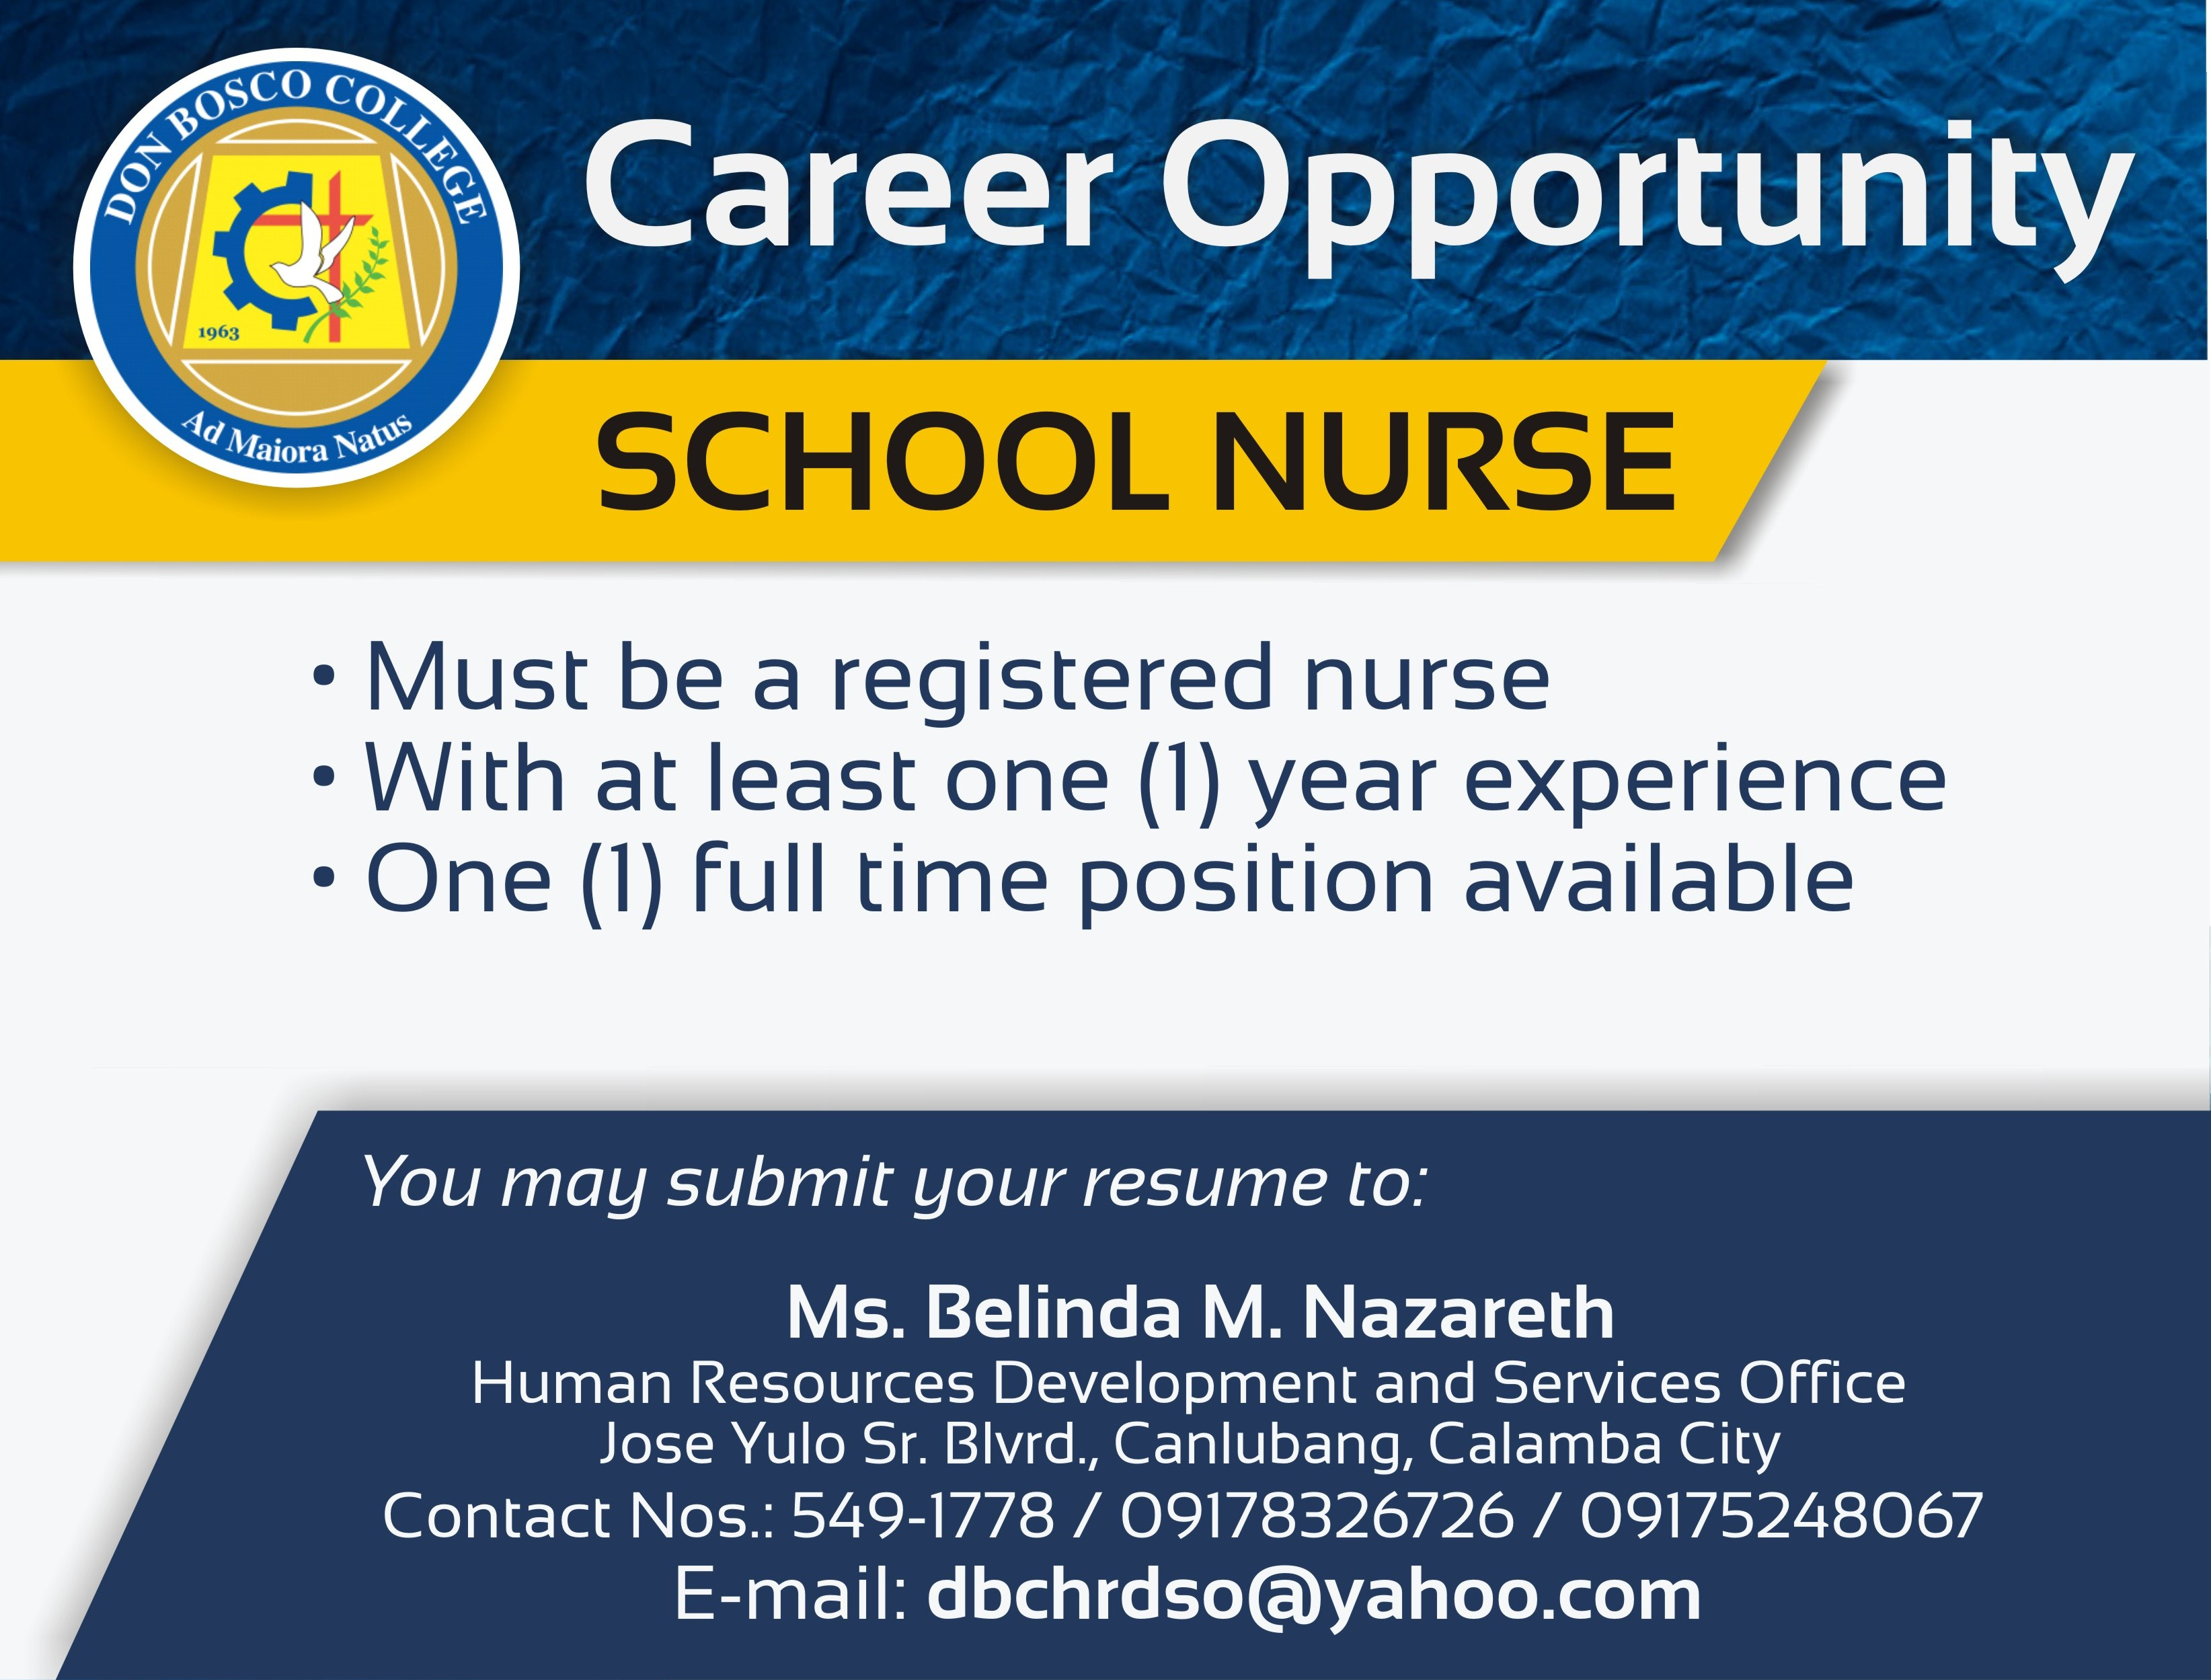 DBC CAREERS: Career Opportunity for School Nurse